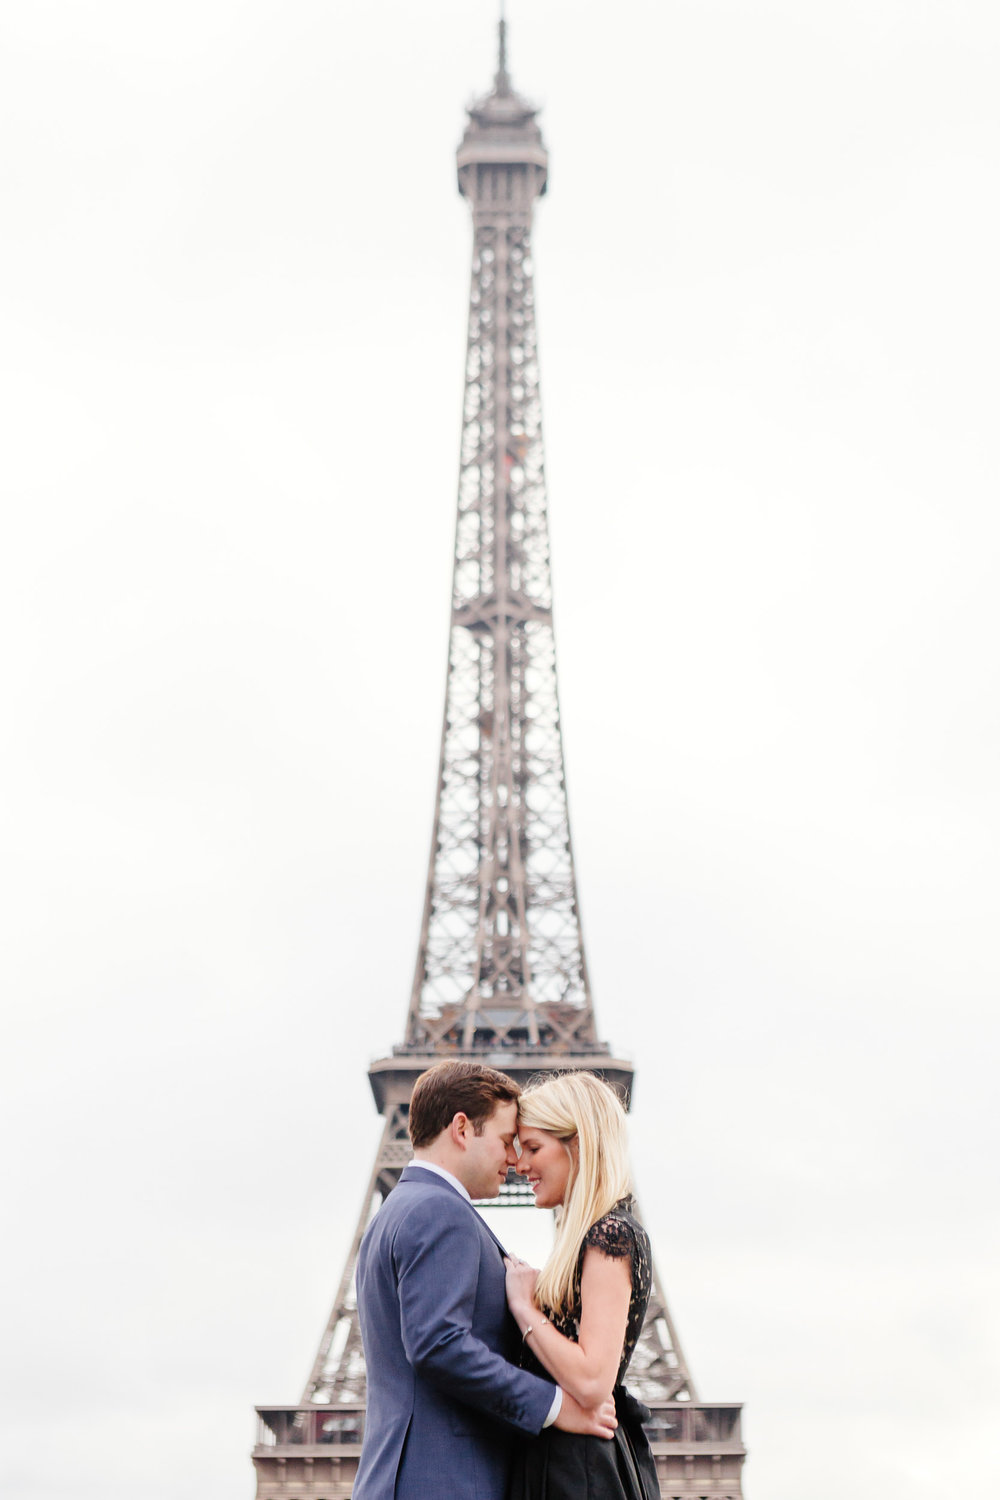 Paris vacation couple portrait at Trocadero with the view of Eiffel Tower captured by Paris Photographer Federico Guendel www.iheartparis.fr